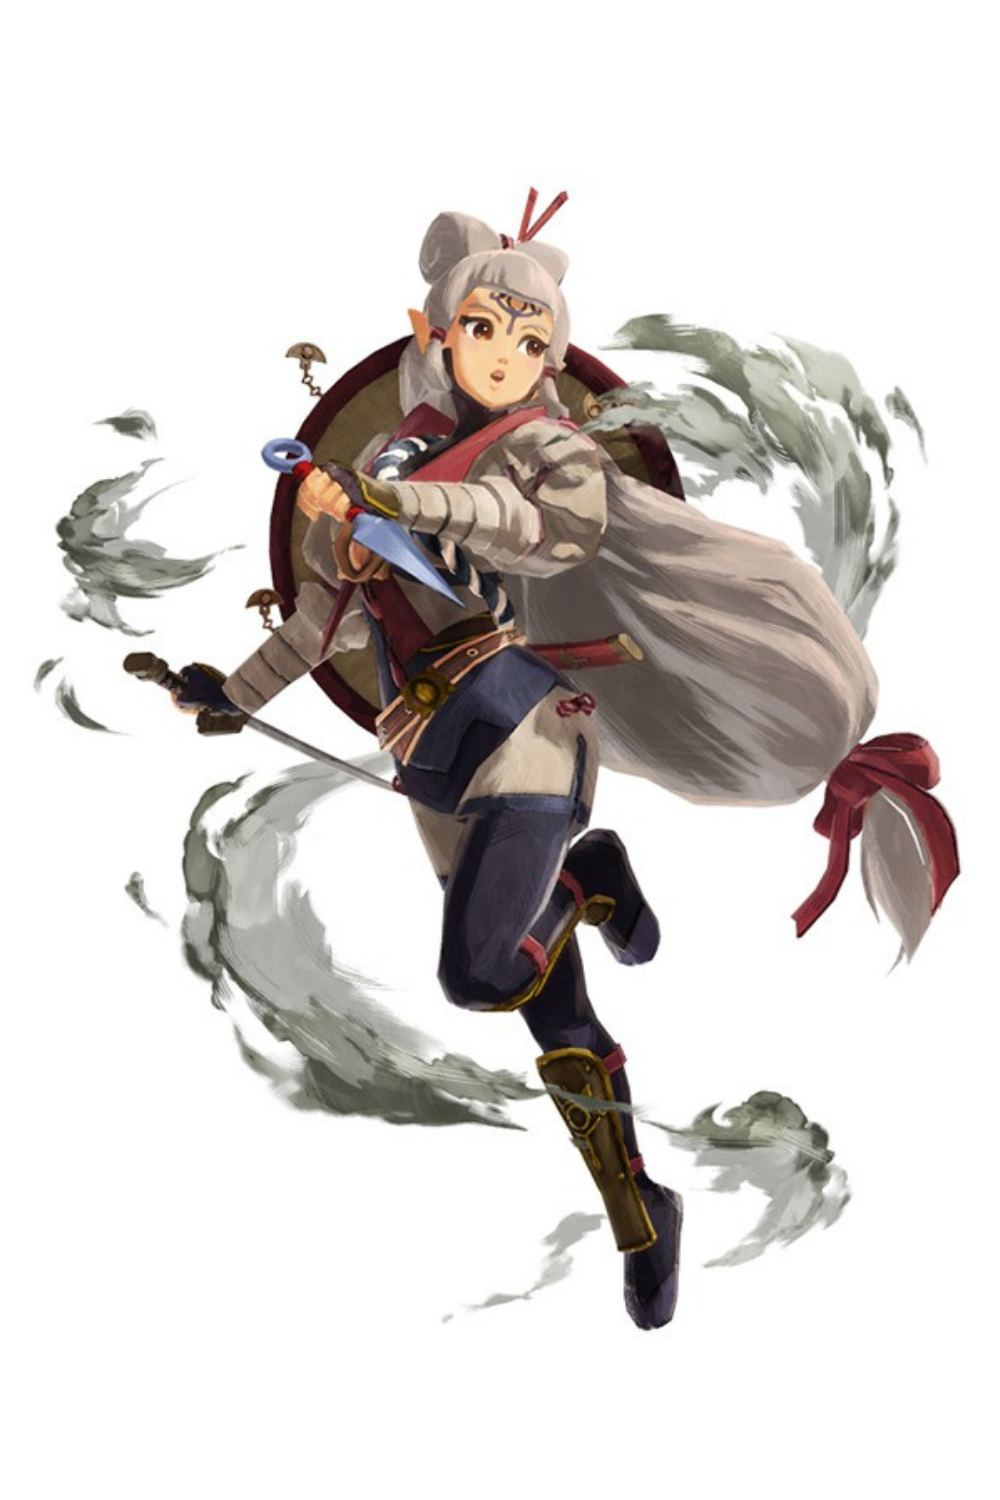 Impa Hyrule Warriors Age Of Calamity Hyrule Warriors Art Reference Illustration